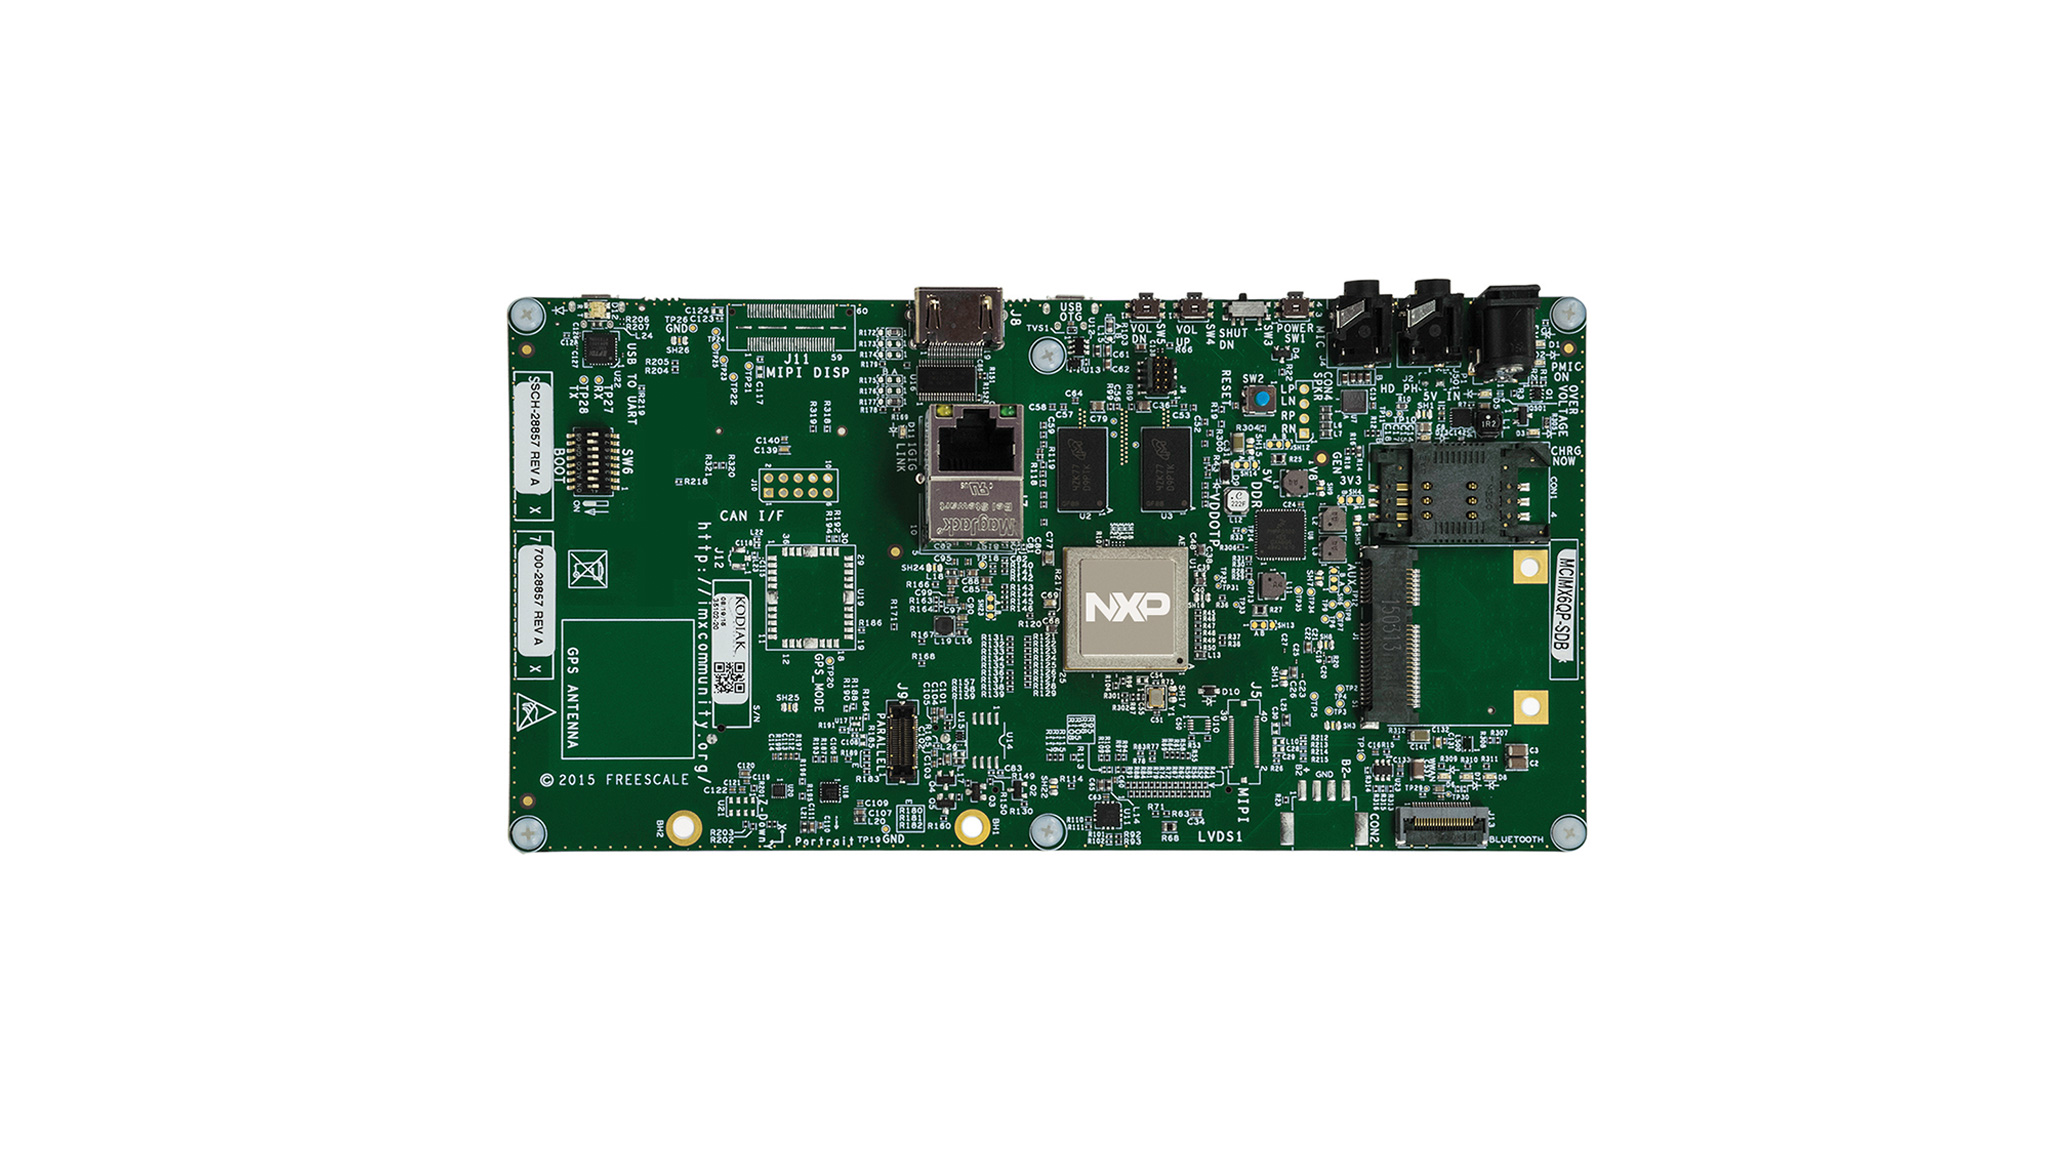 SABRE Board for Smart Devices Based on the i.MX 6Quad Applications Processors thumbnail